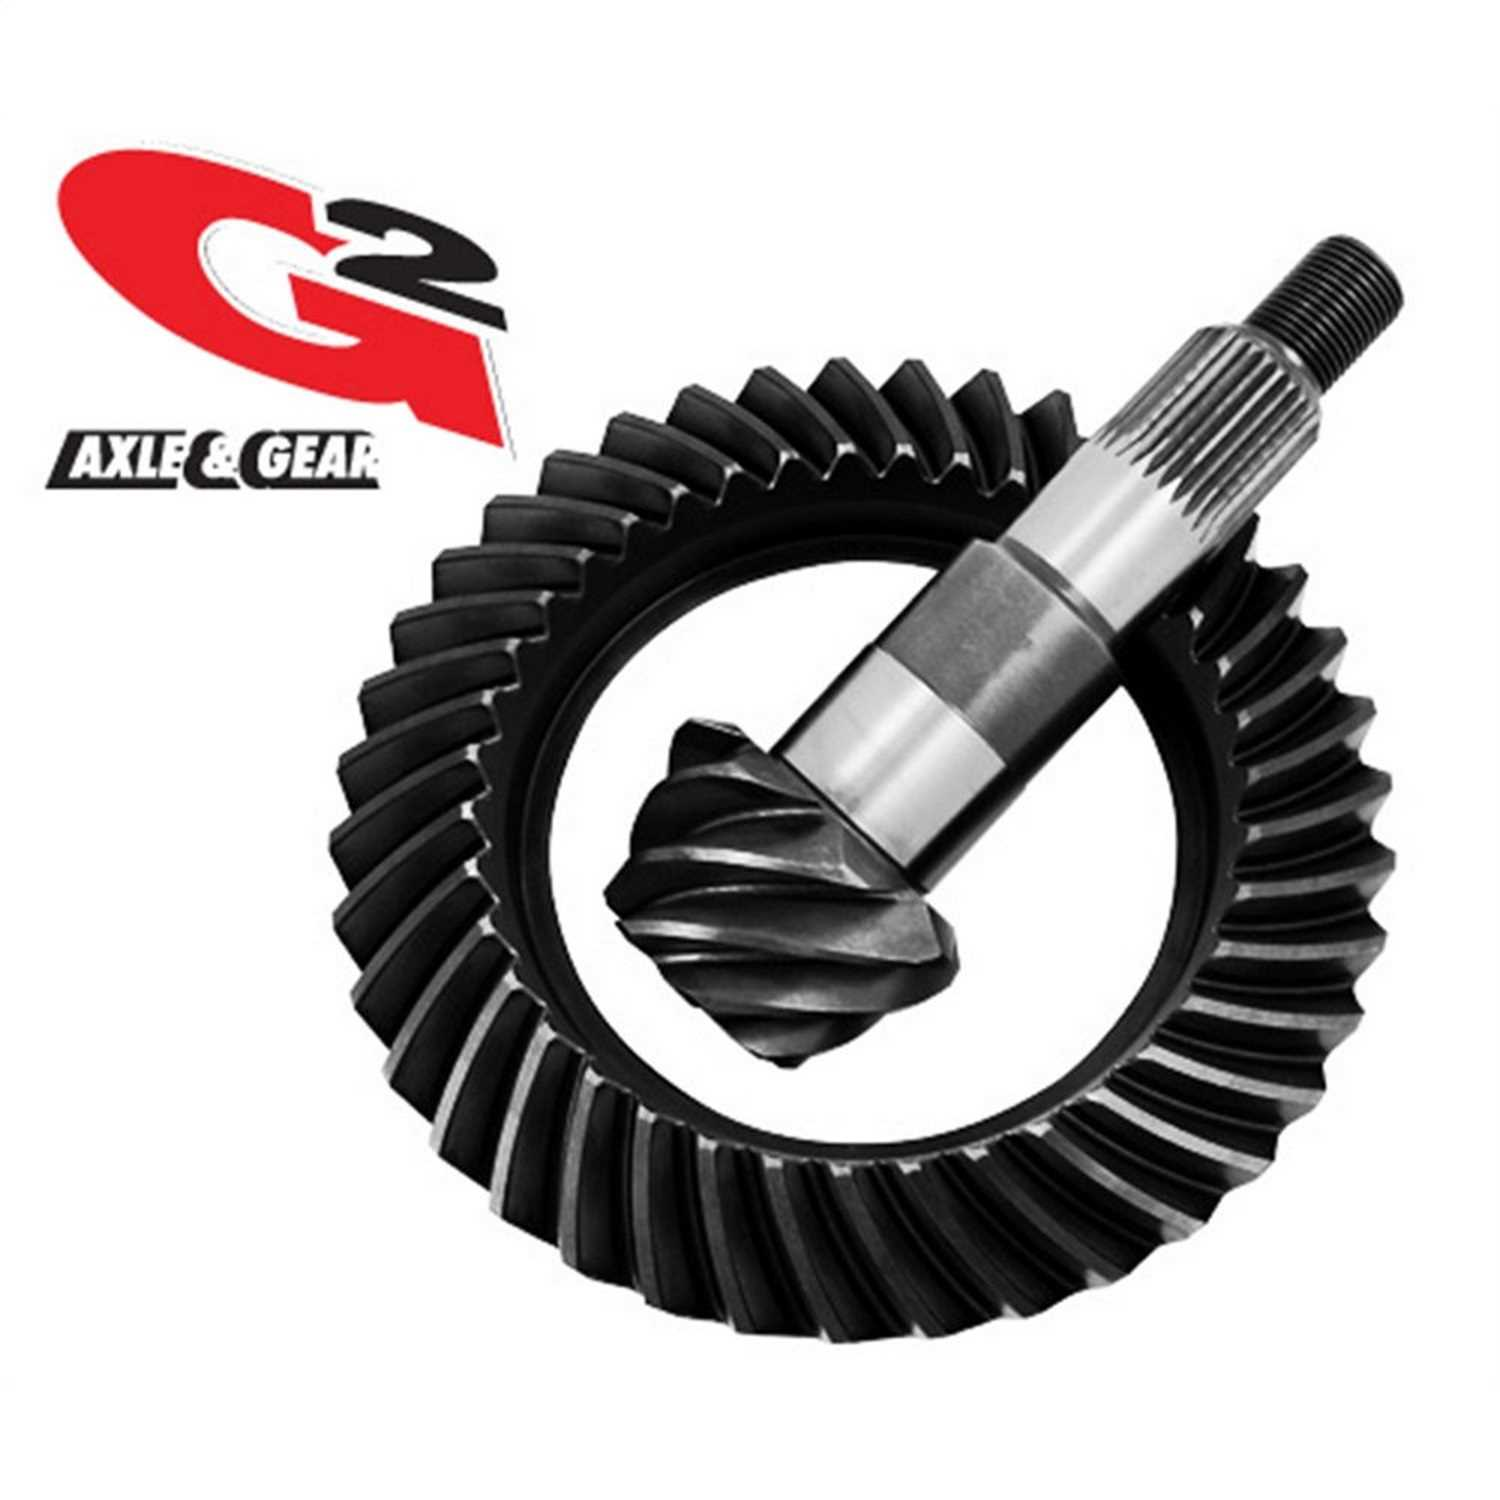 2-2011-486 G2 Axle and Gear Ring and Pinion Set